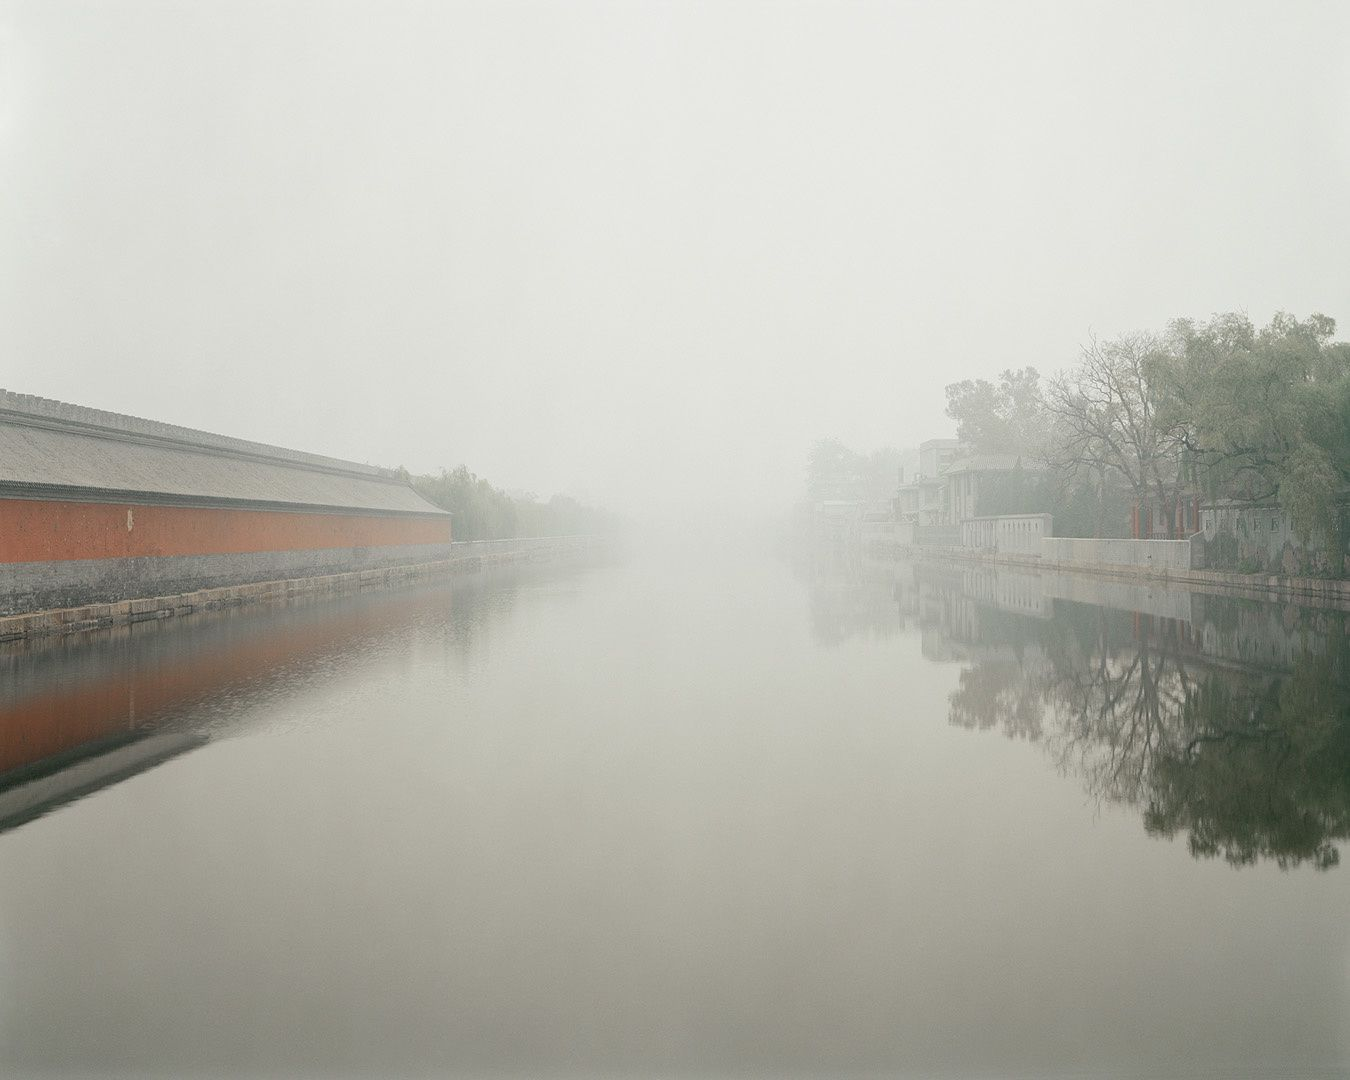 Ambroise Tézenas, Beijing, Chine, 2004 ( Série : Beijing Theatre of People )